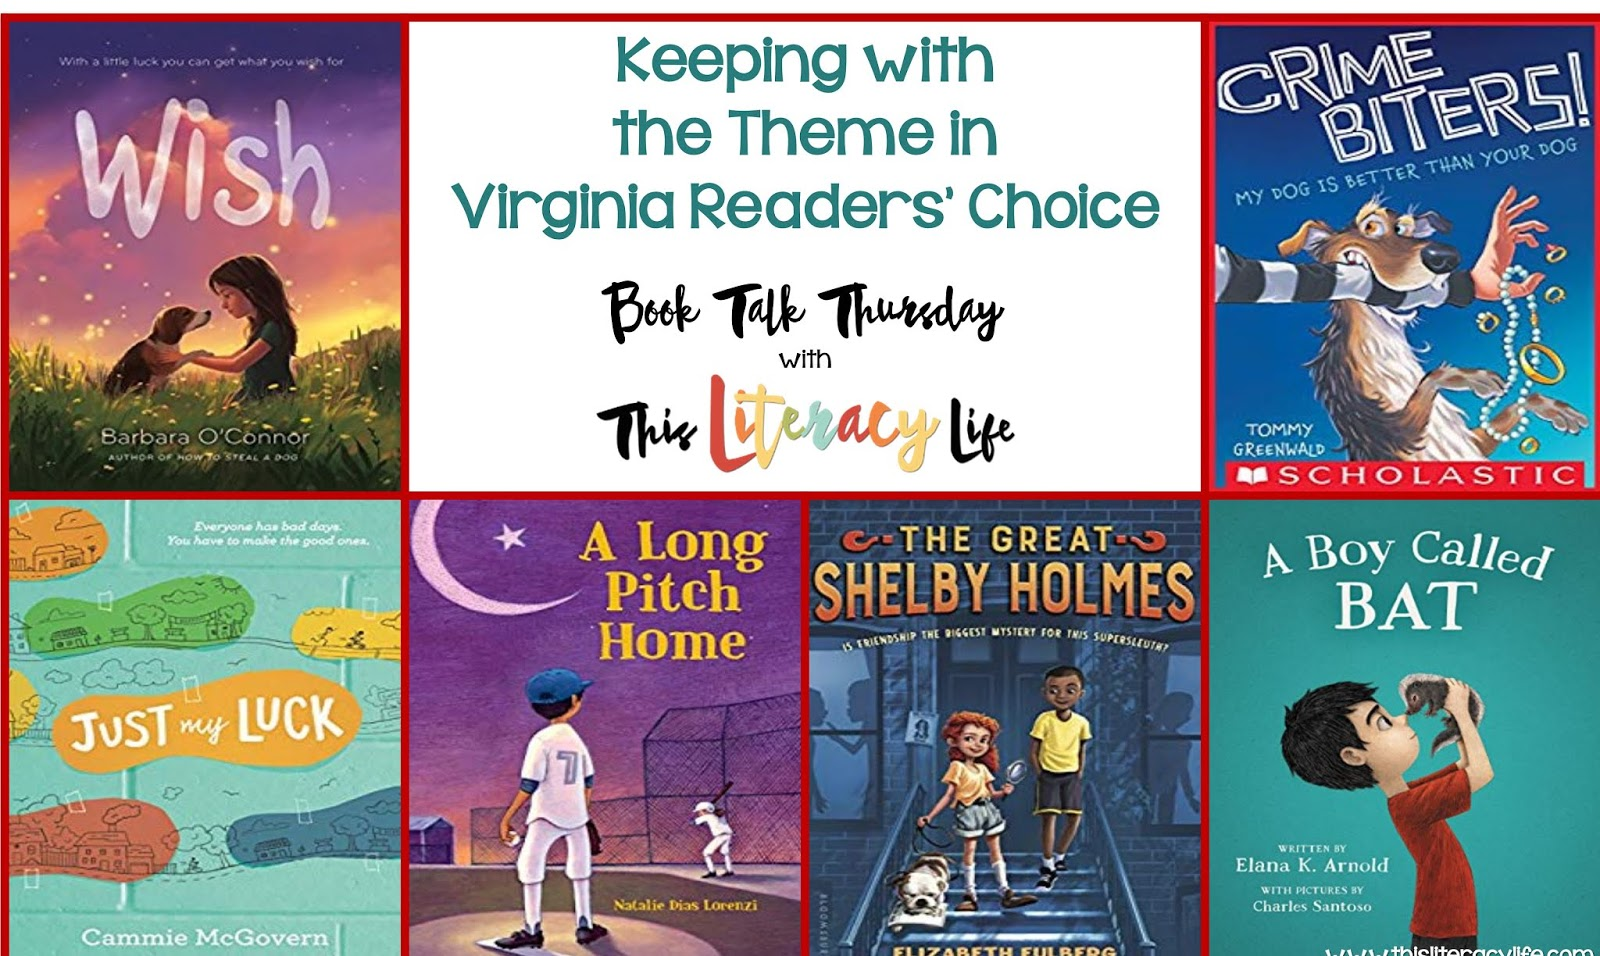 A common theme of friendship runs through all of these Virginia Readers' Choice books. See how they can help so many students as they work on making new friends each day.